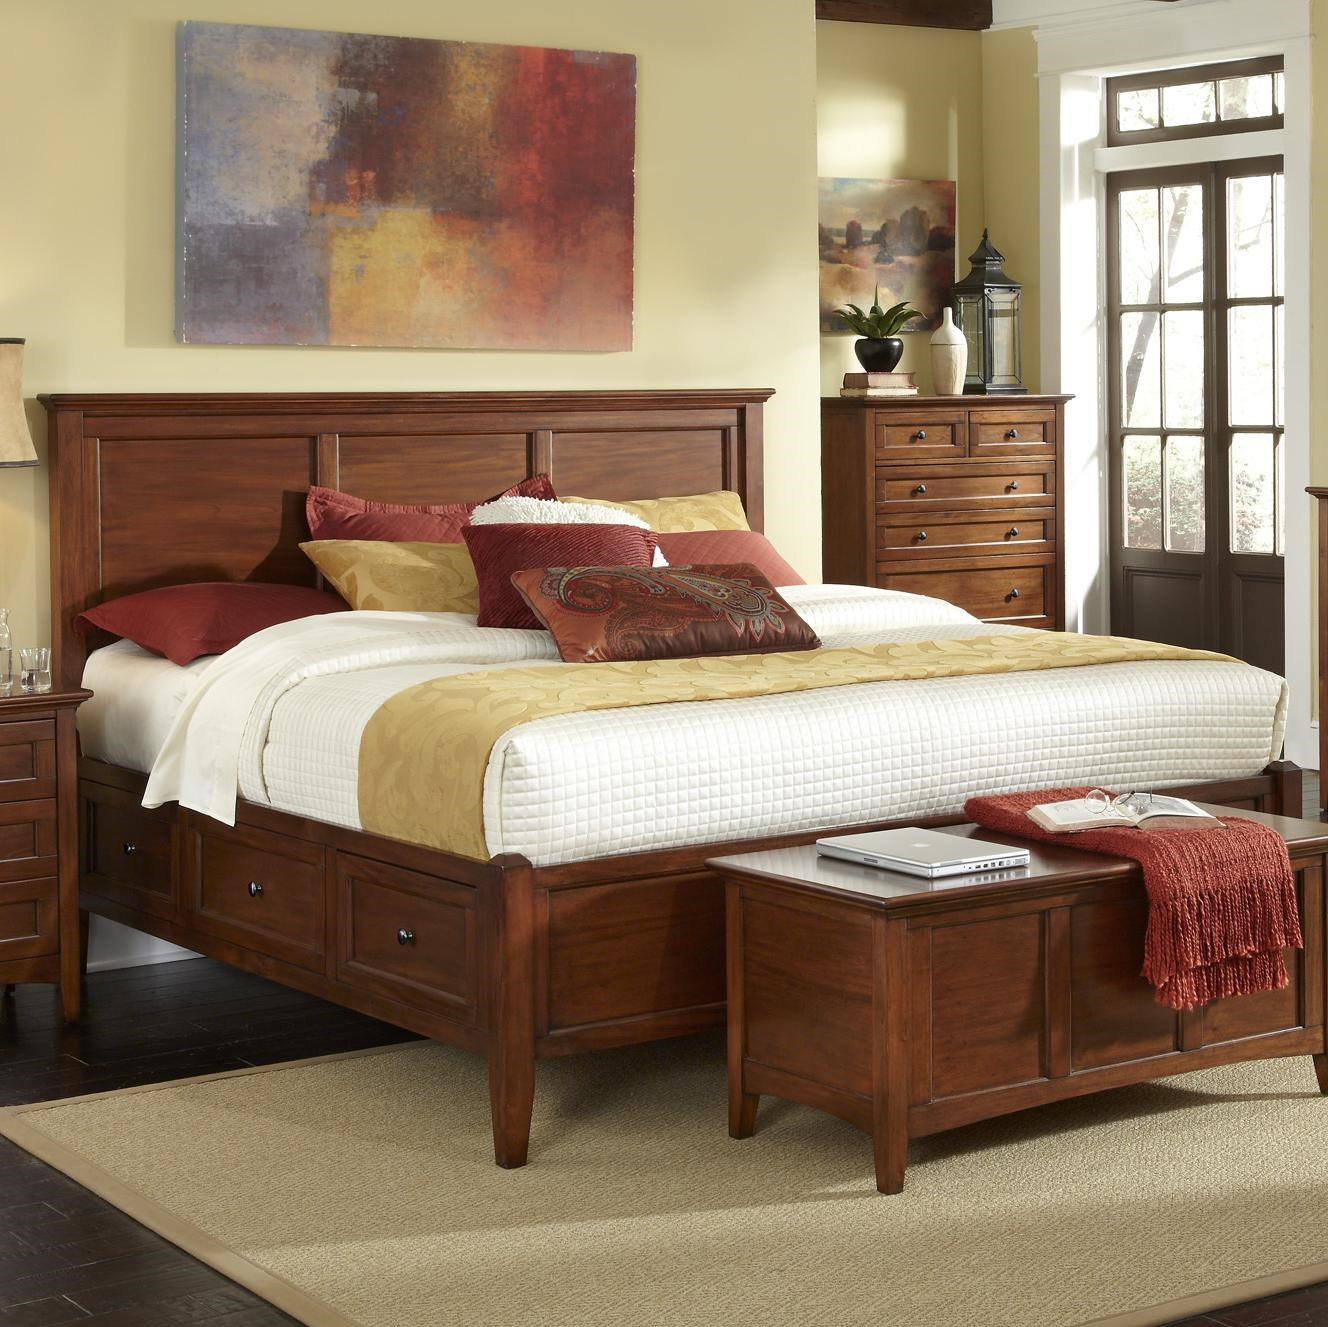 Aamerica Westlake Transitional Queen Bed With 6 Storage Drawers Conlin S Furniture Platform Beds Low Profile Beds